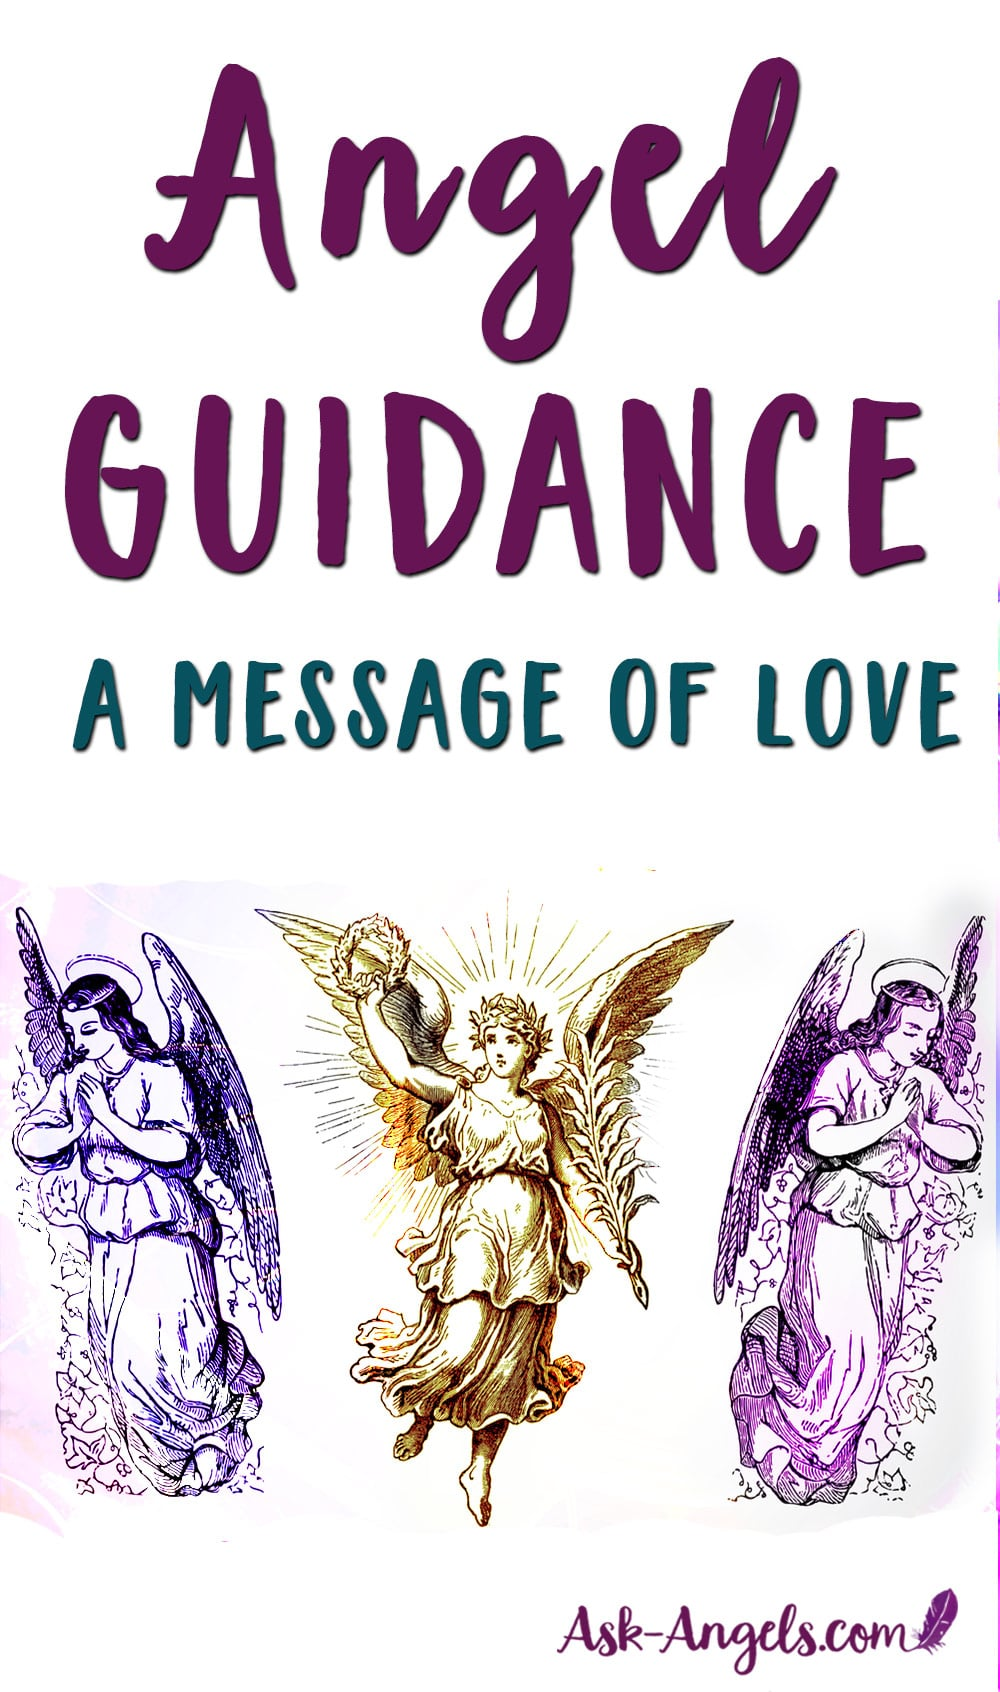 Angel Guidance - A Message of Love